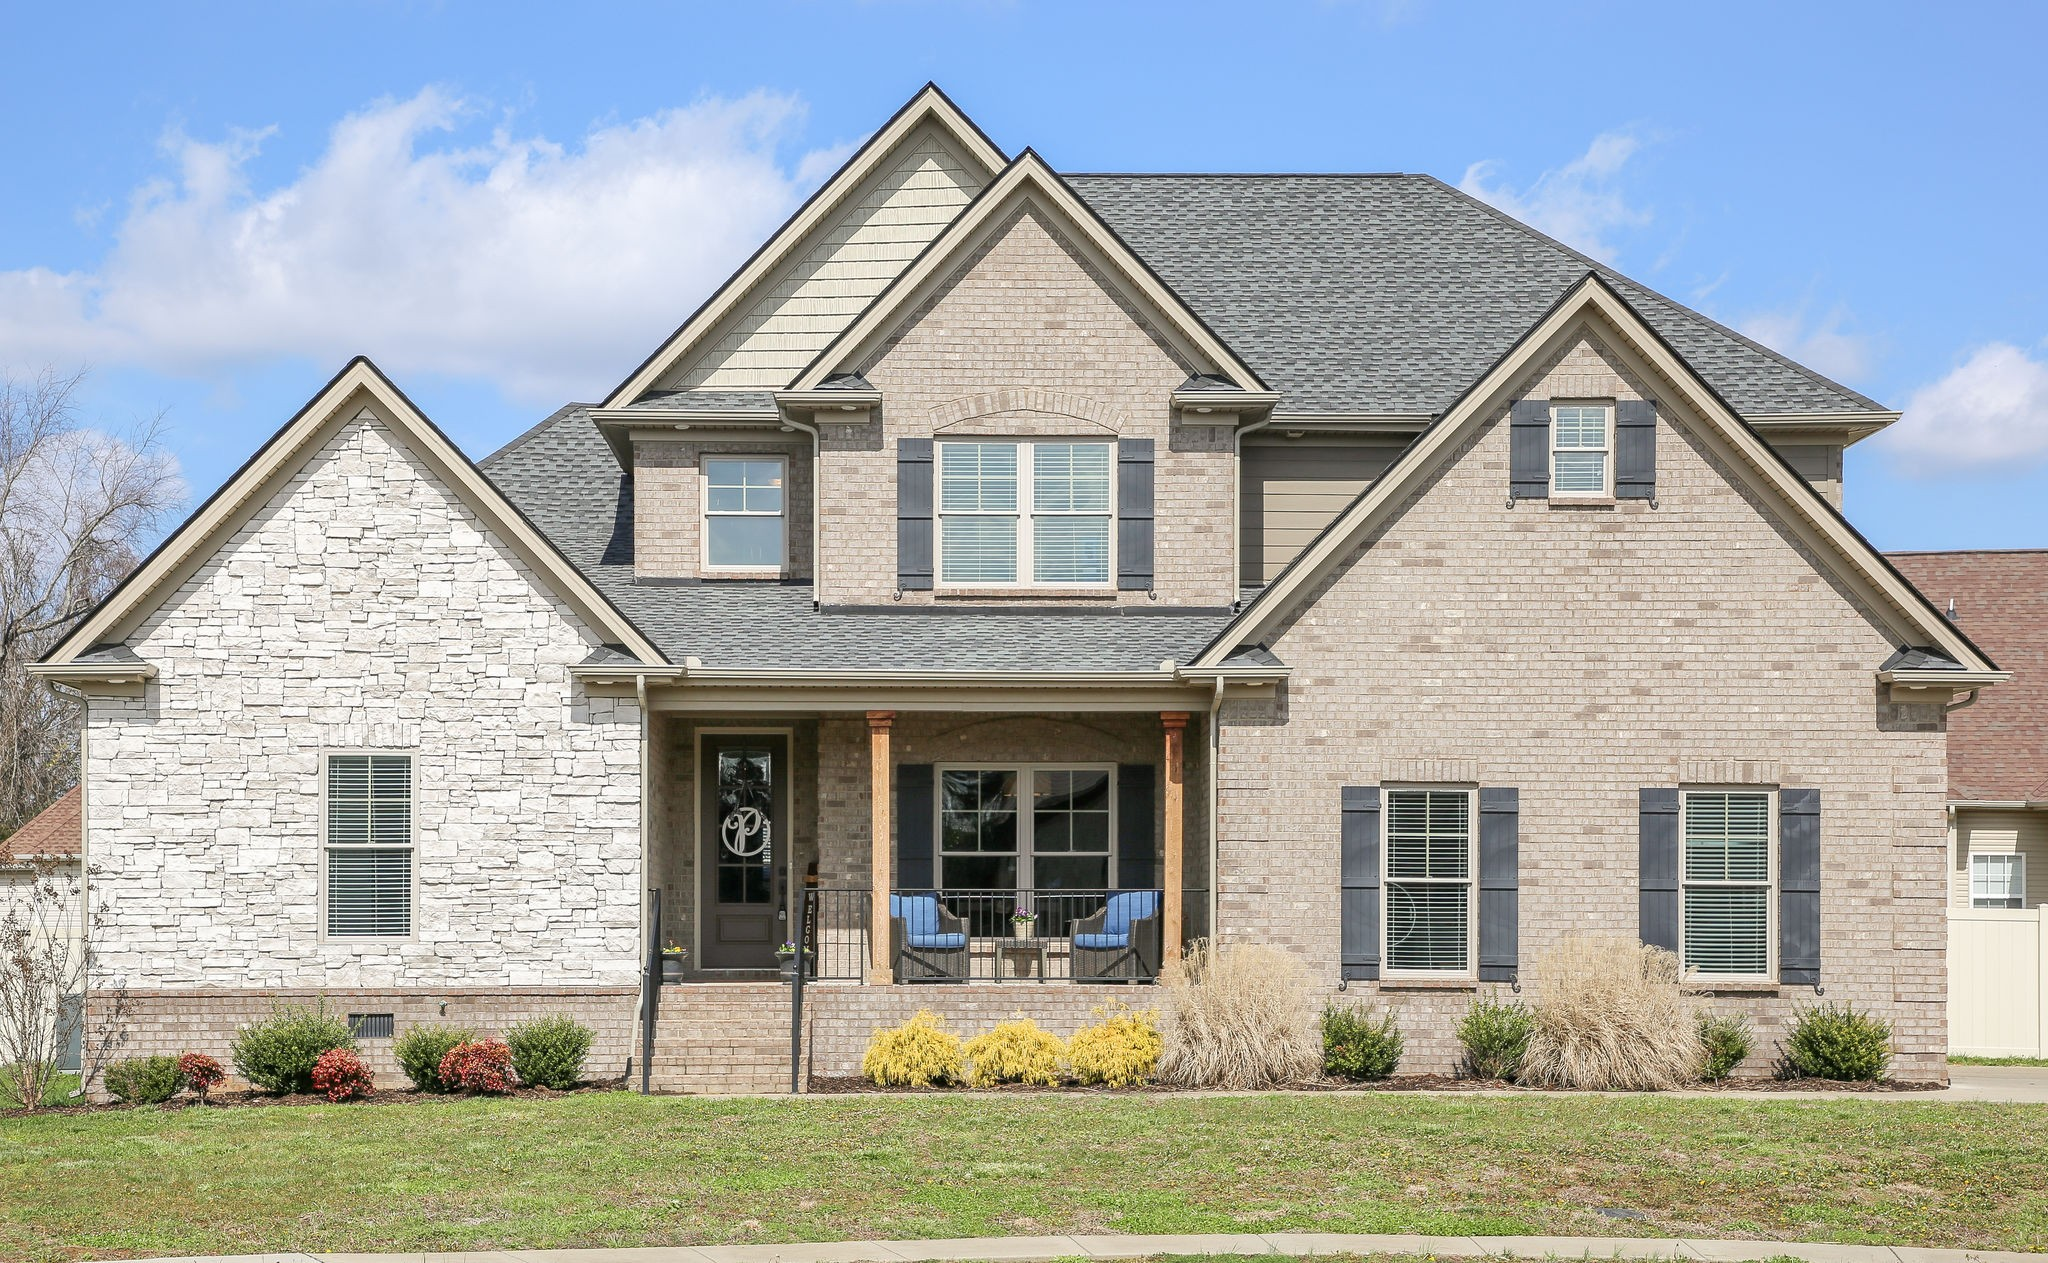 1711 Jose Way, Murfreesboro, TN 37130 - Murfreesboro, TN real estate listing